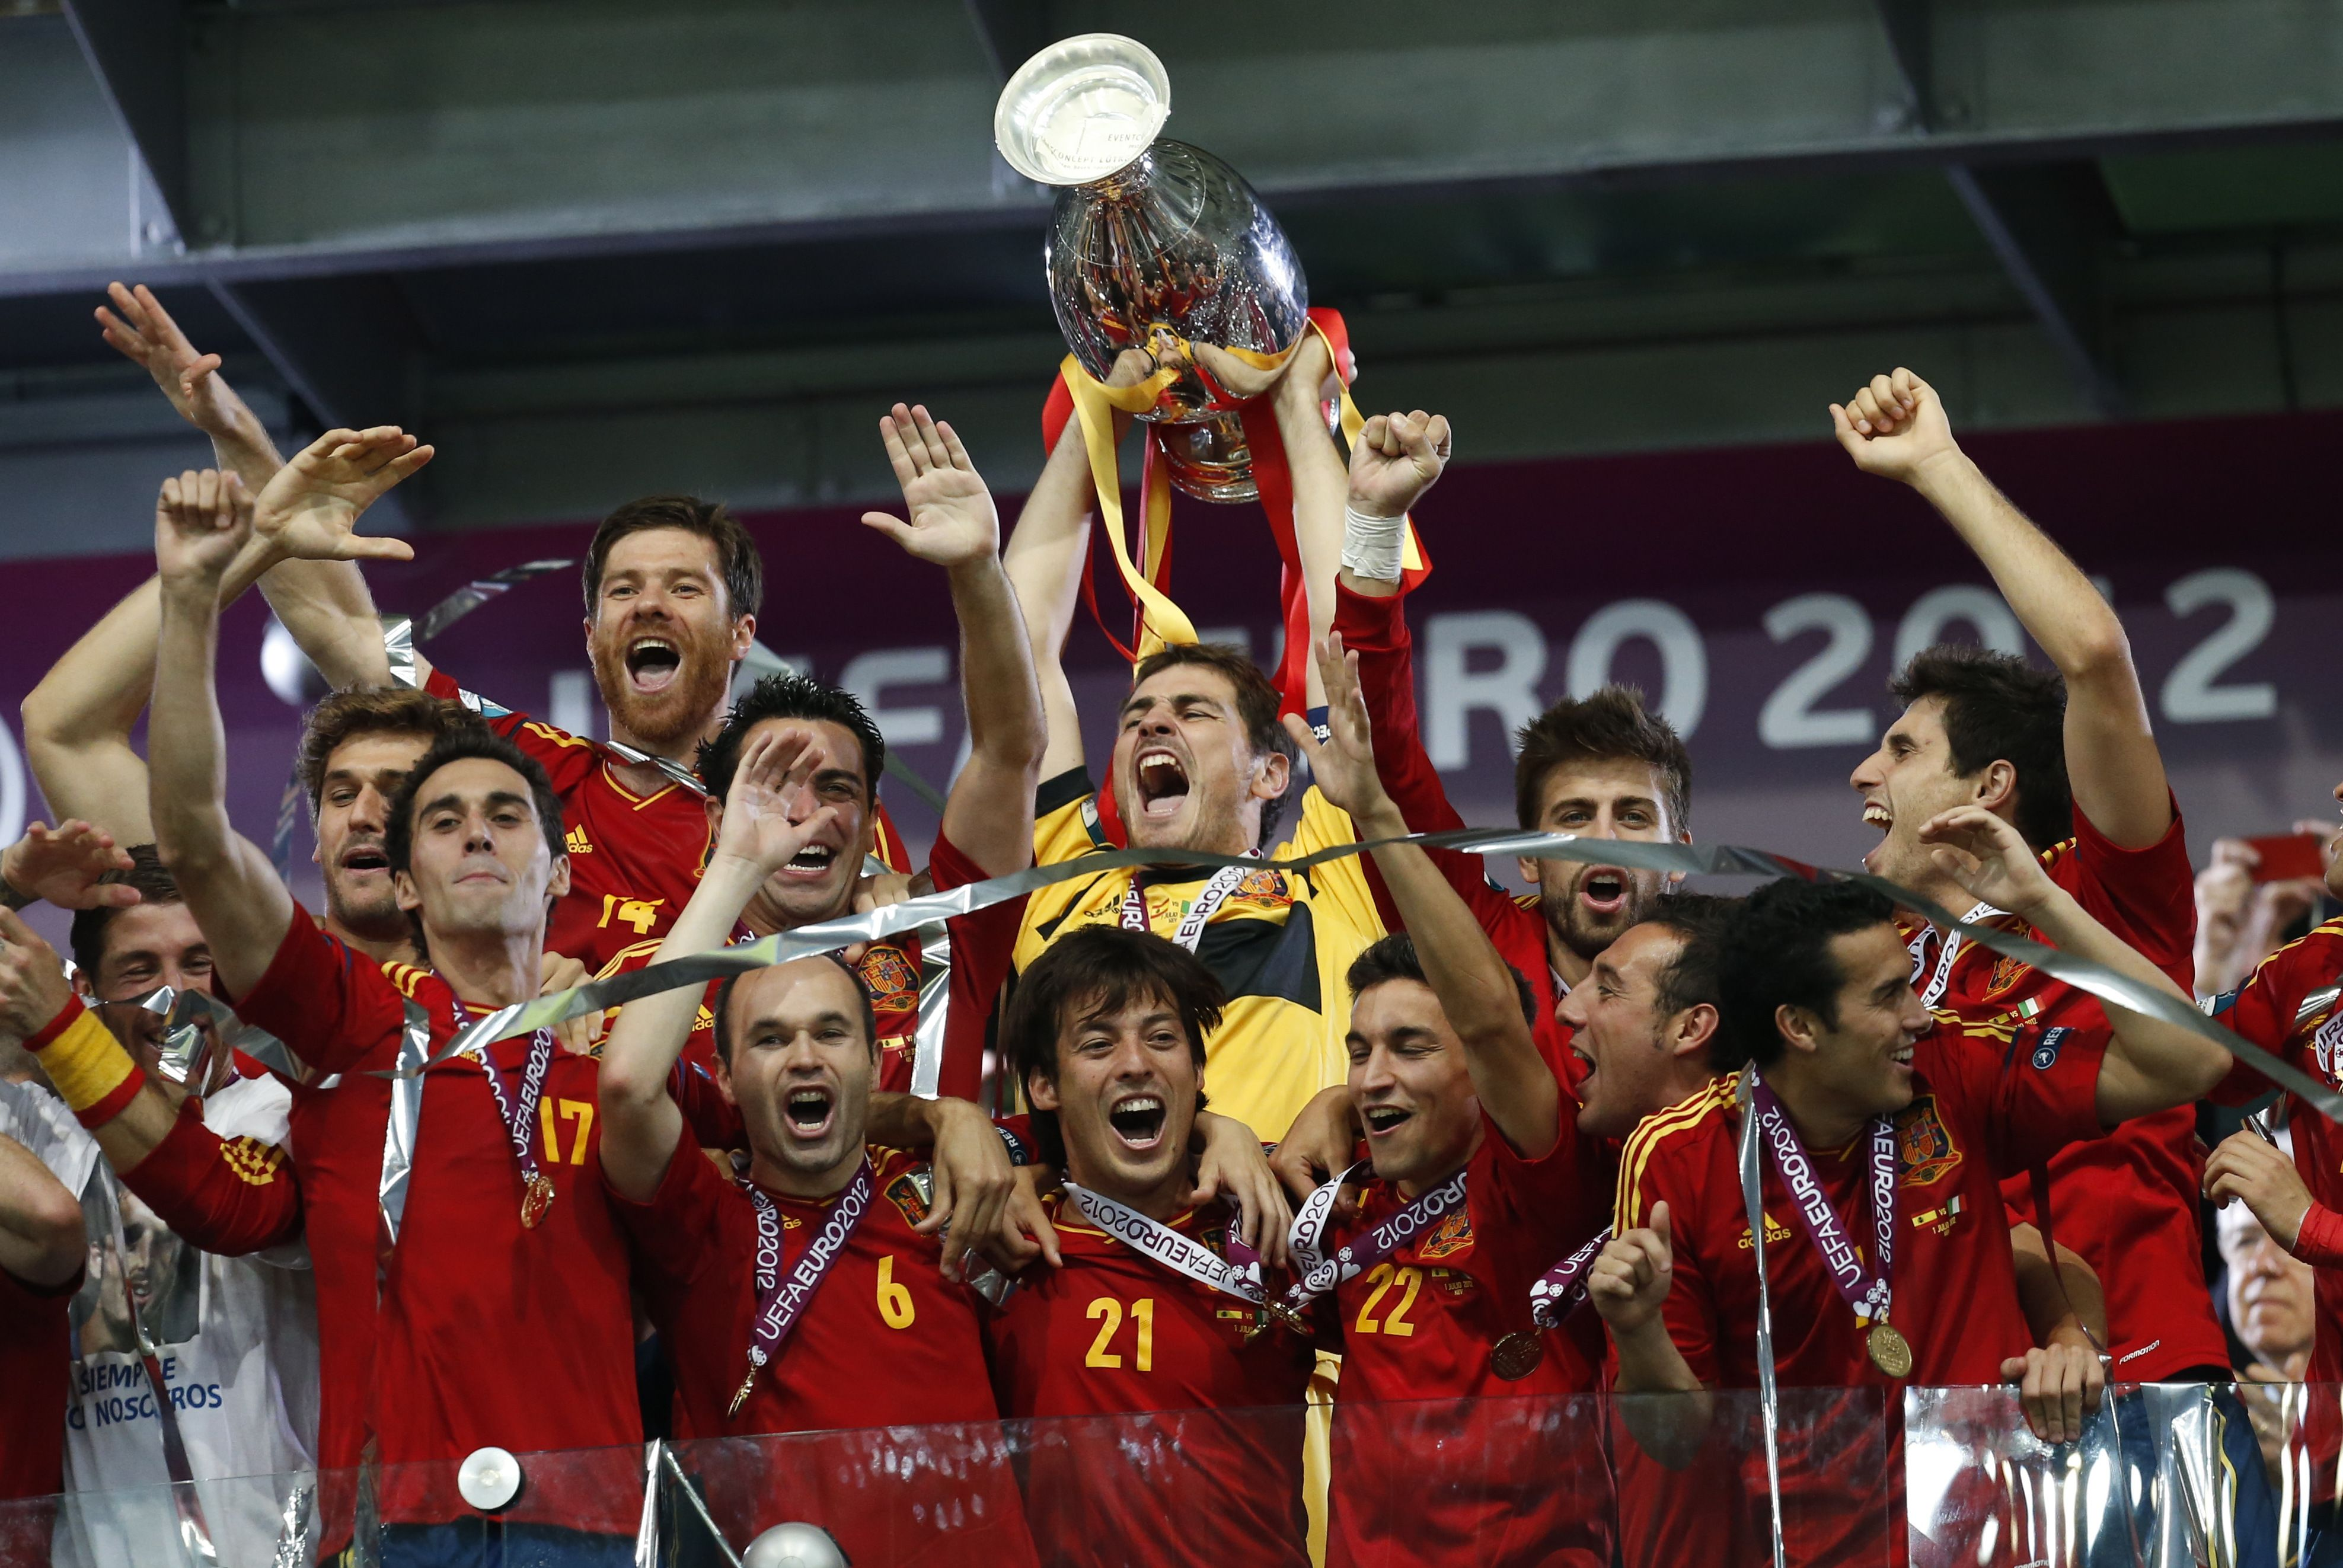 Spain goalkeeper Iker Casillas lifts the trophy after the Euro 2012 soccer championship final  between Spain and Italy in Kiev, Ukraine, Sunday, July 1, 2012. (AP Photo/Matthias Schrader)